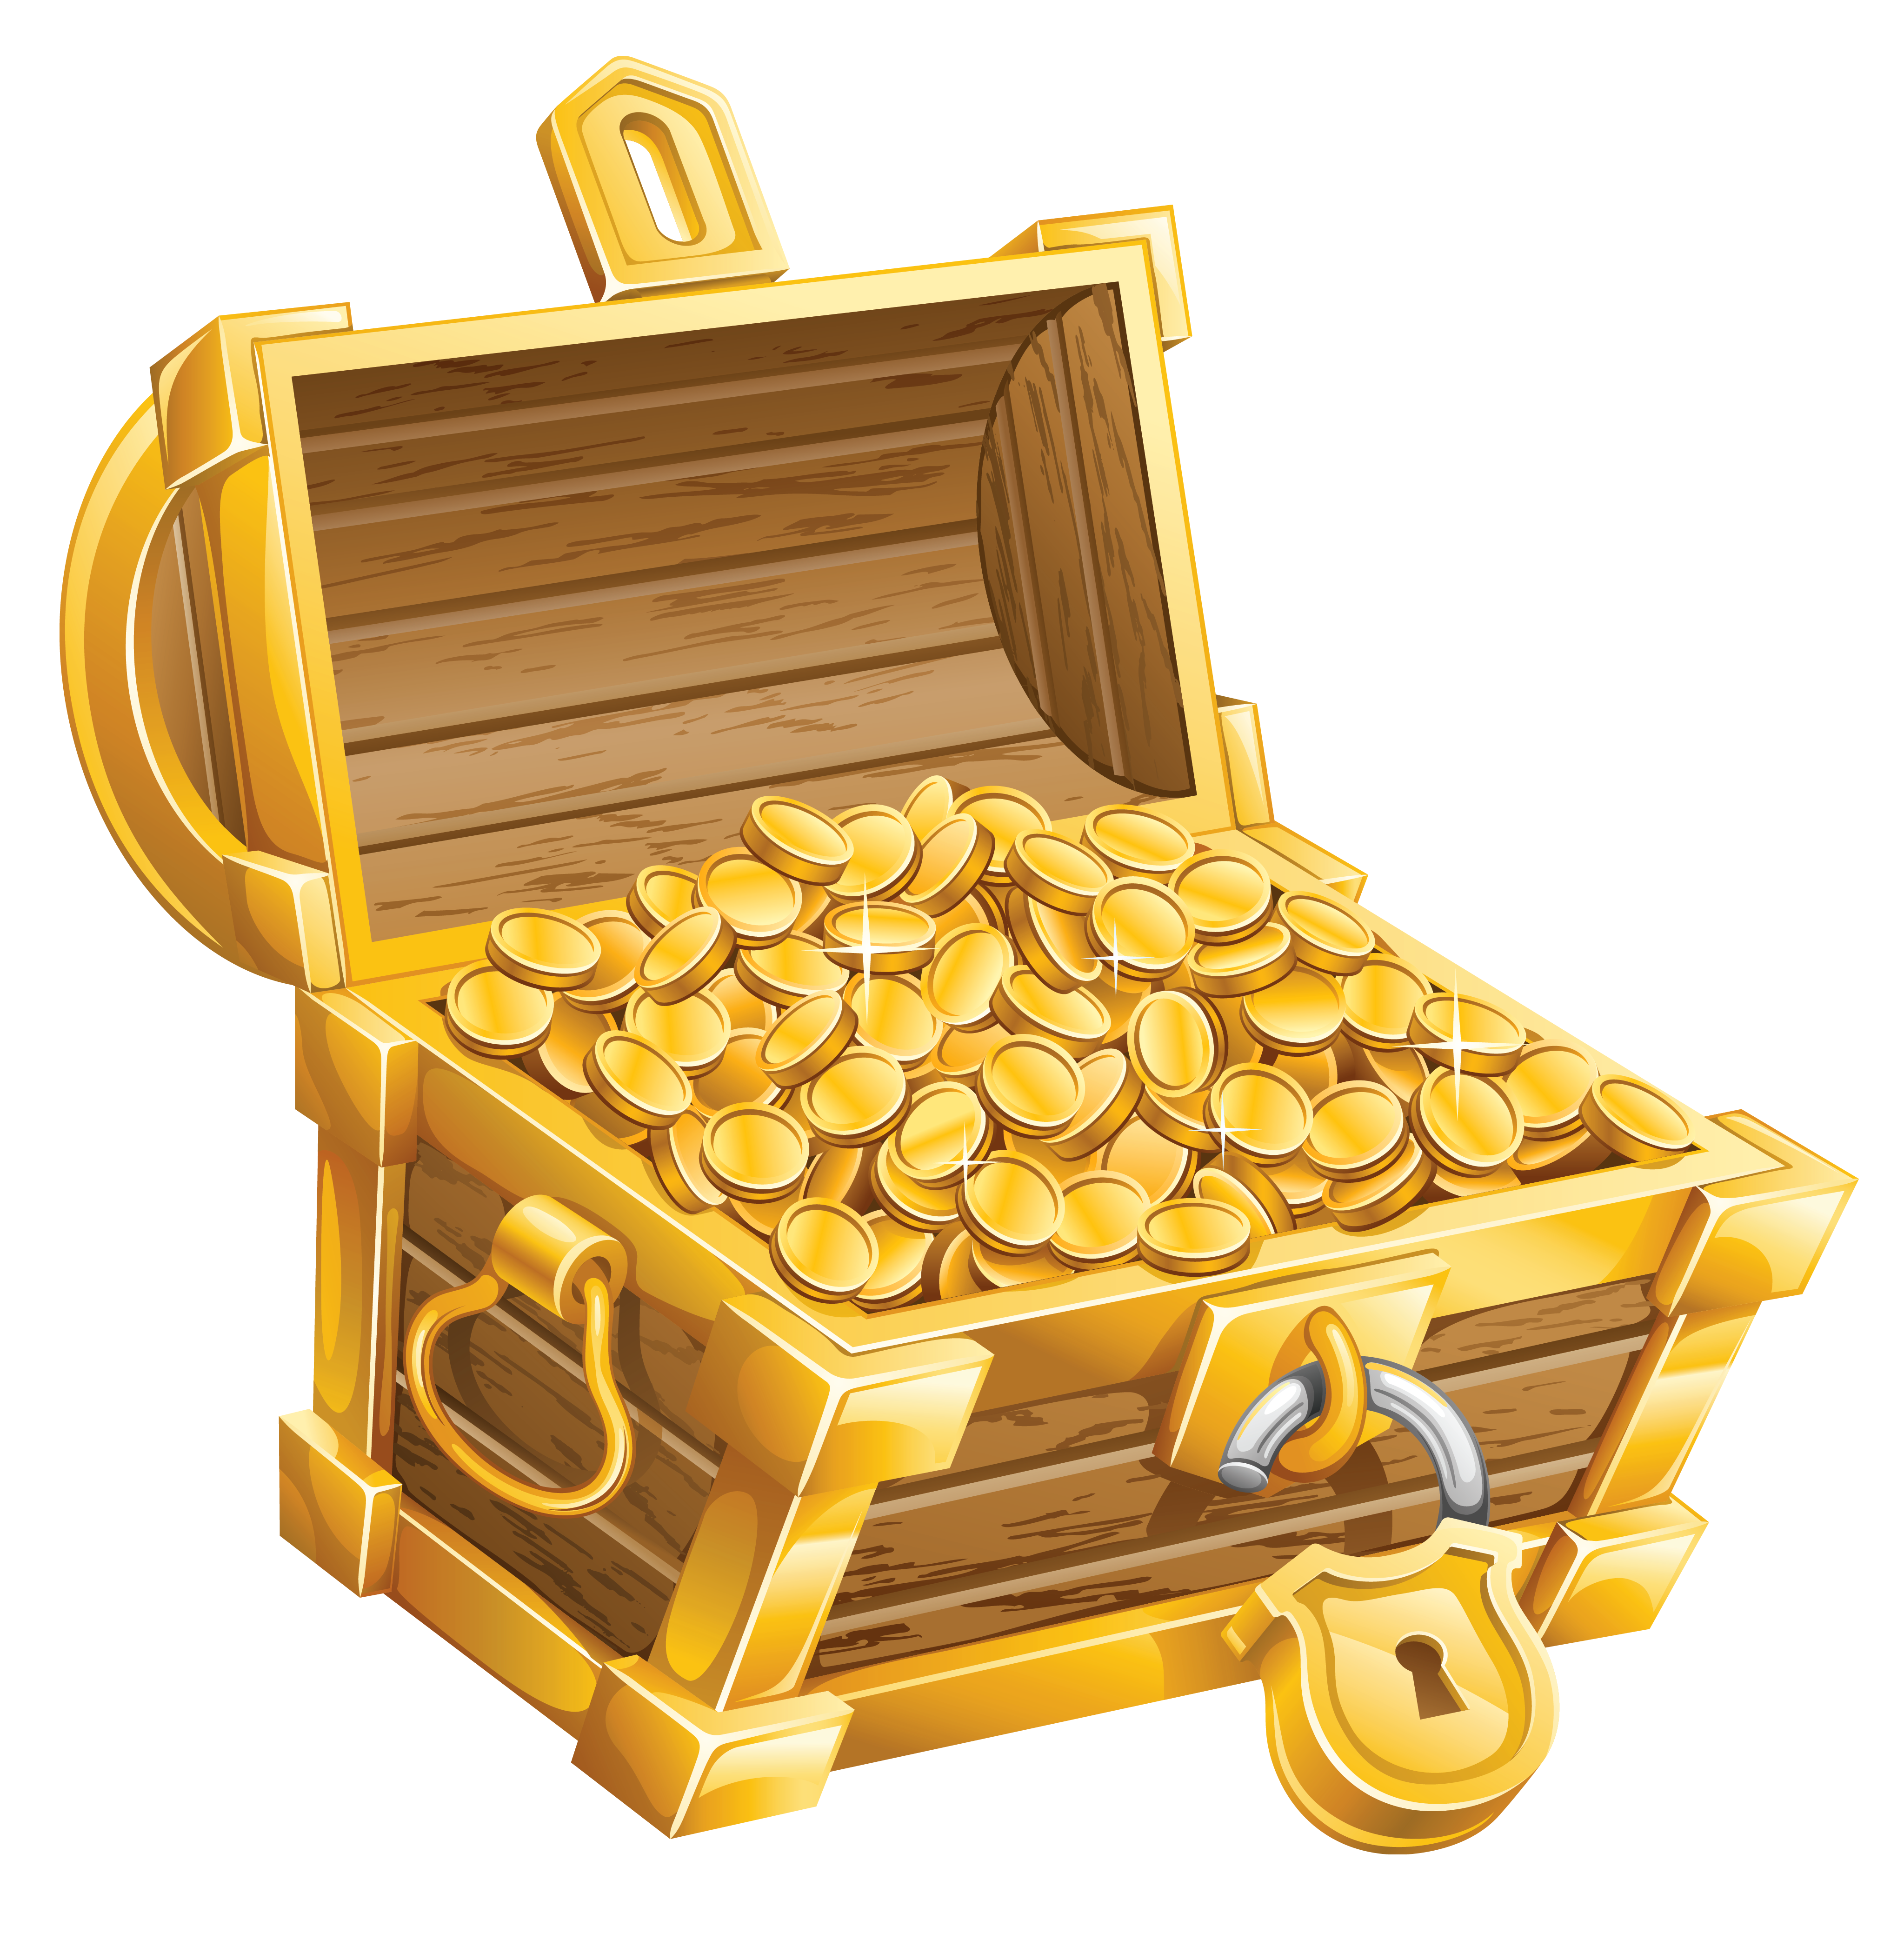 treasure-chest-clip-art.png